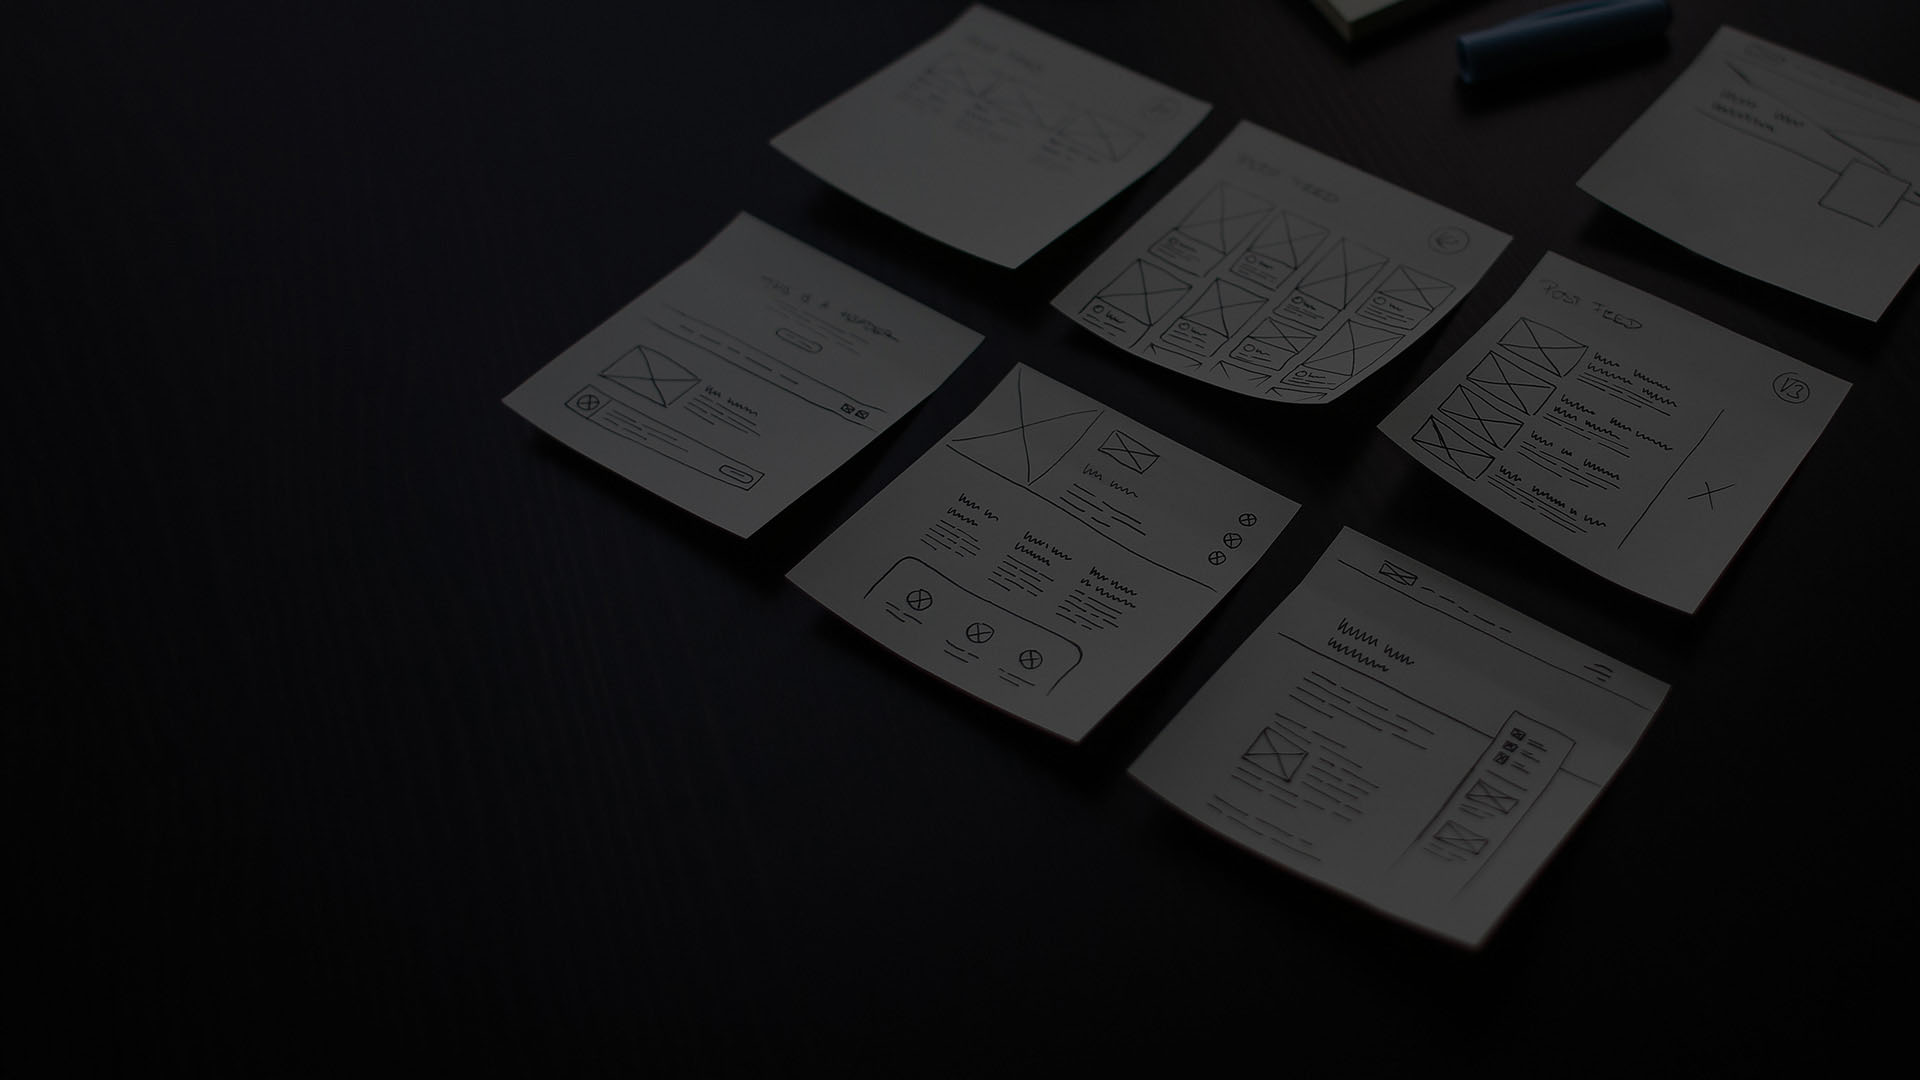 Sticky notes outlining marketing process